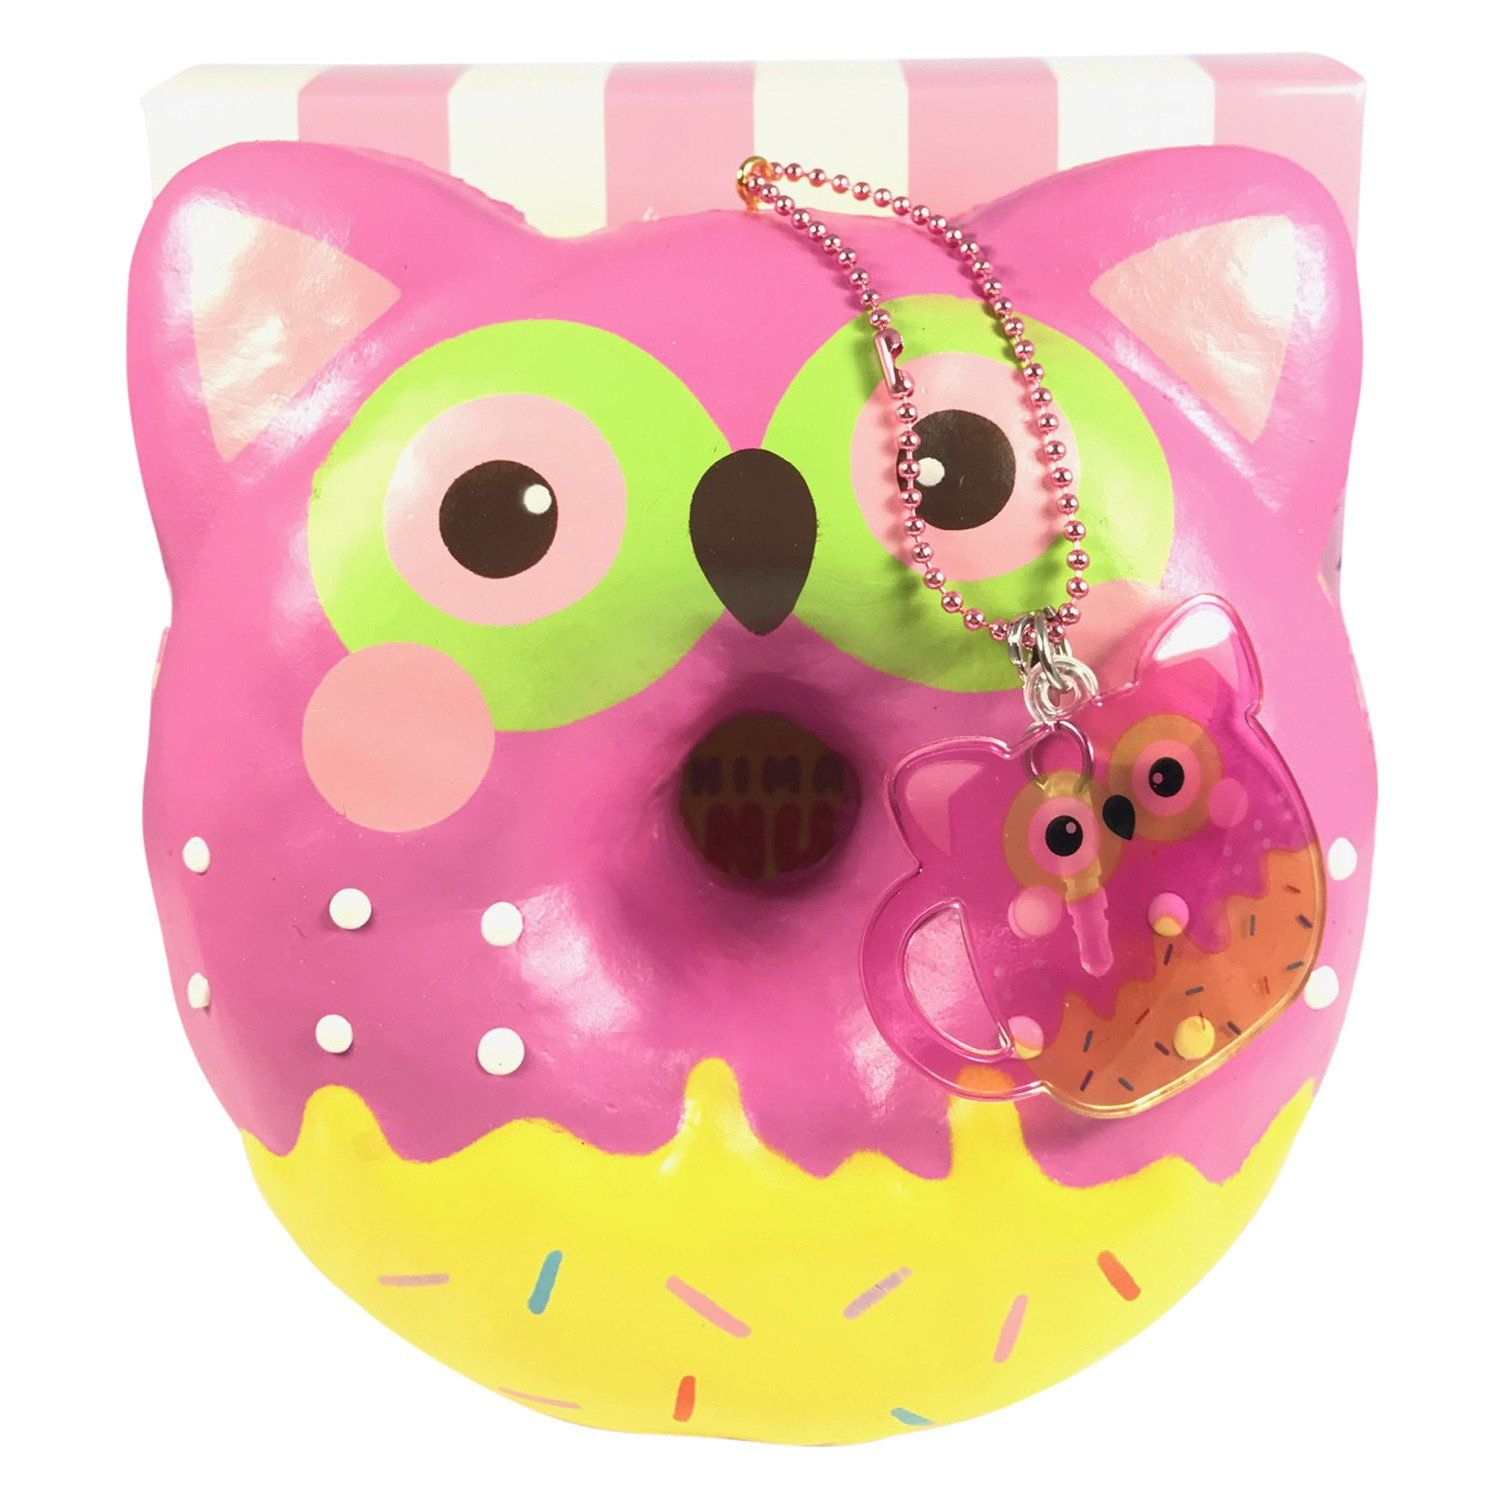 Puni Maru Jumbo Animal Donut SCENTED Squishy! squishes Pinterest Doughnut, Animal and ...